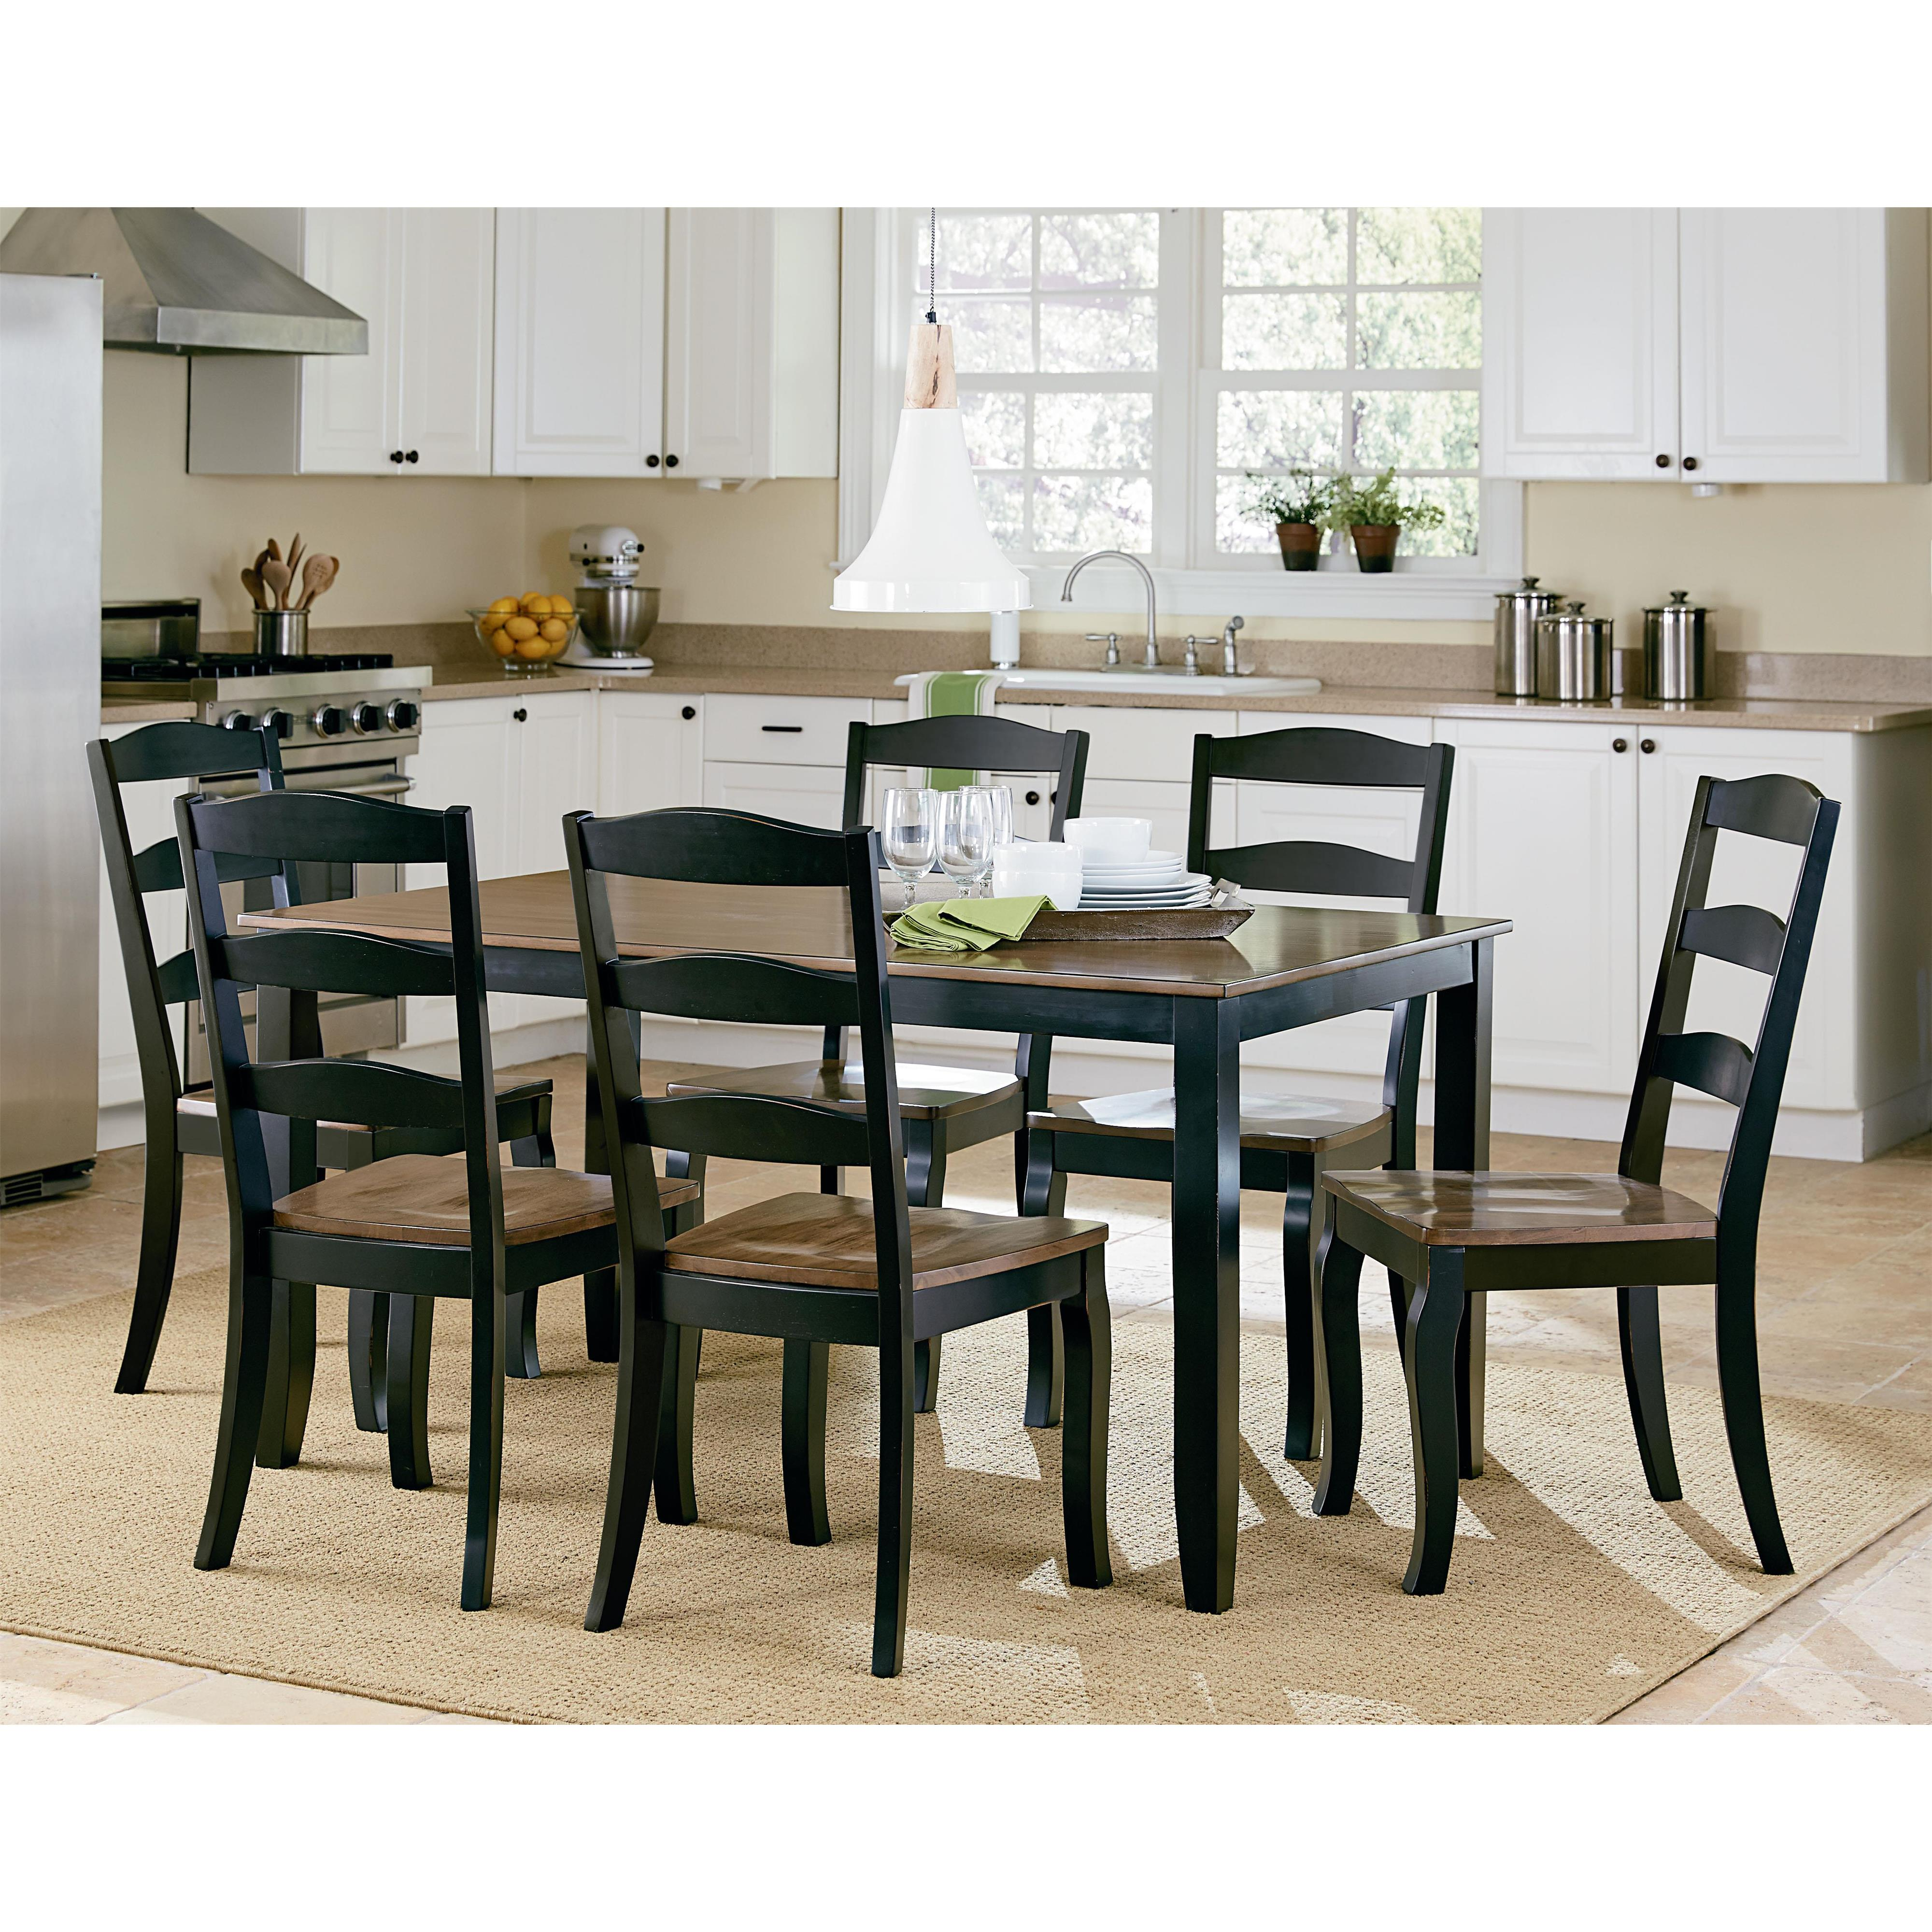 Standard Furniture Highland Black Table and Chair Set      - Item Number: 16542